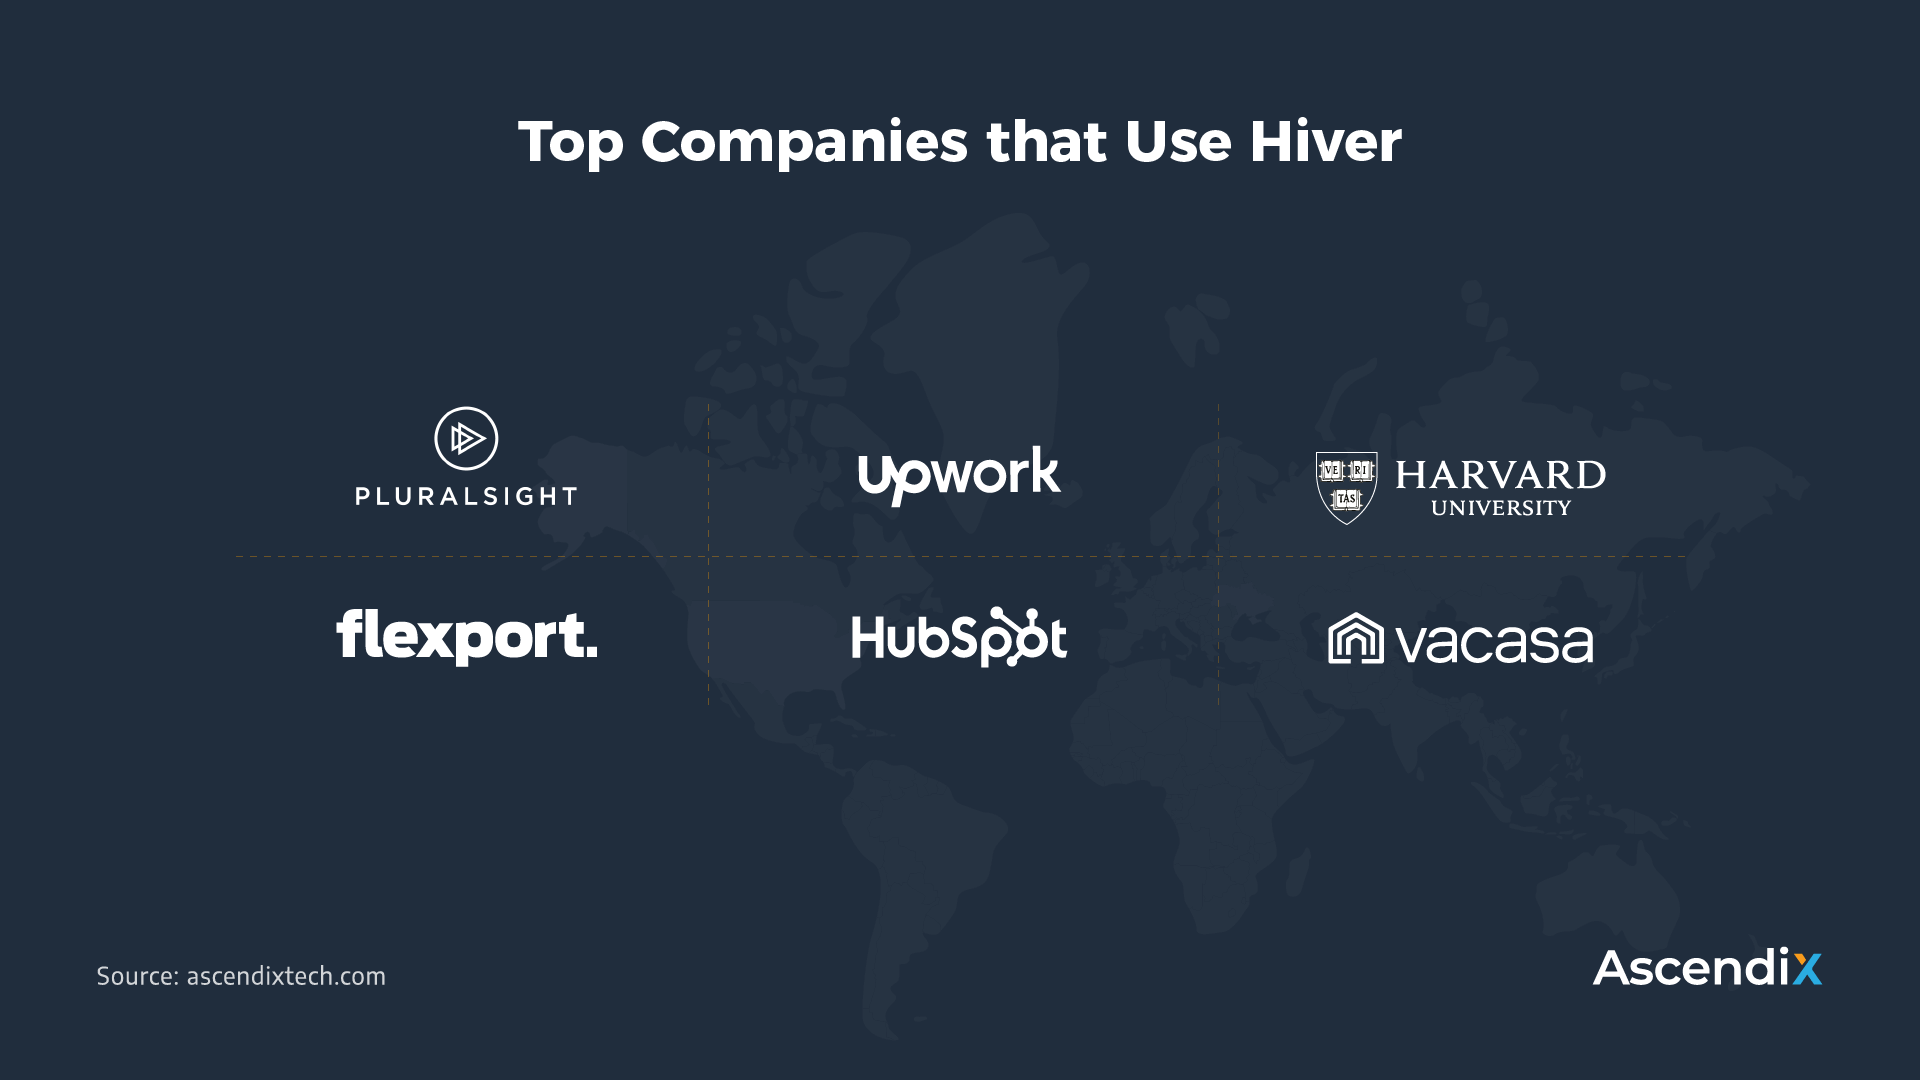 Top Companies that Use Hiver